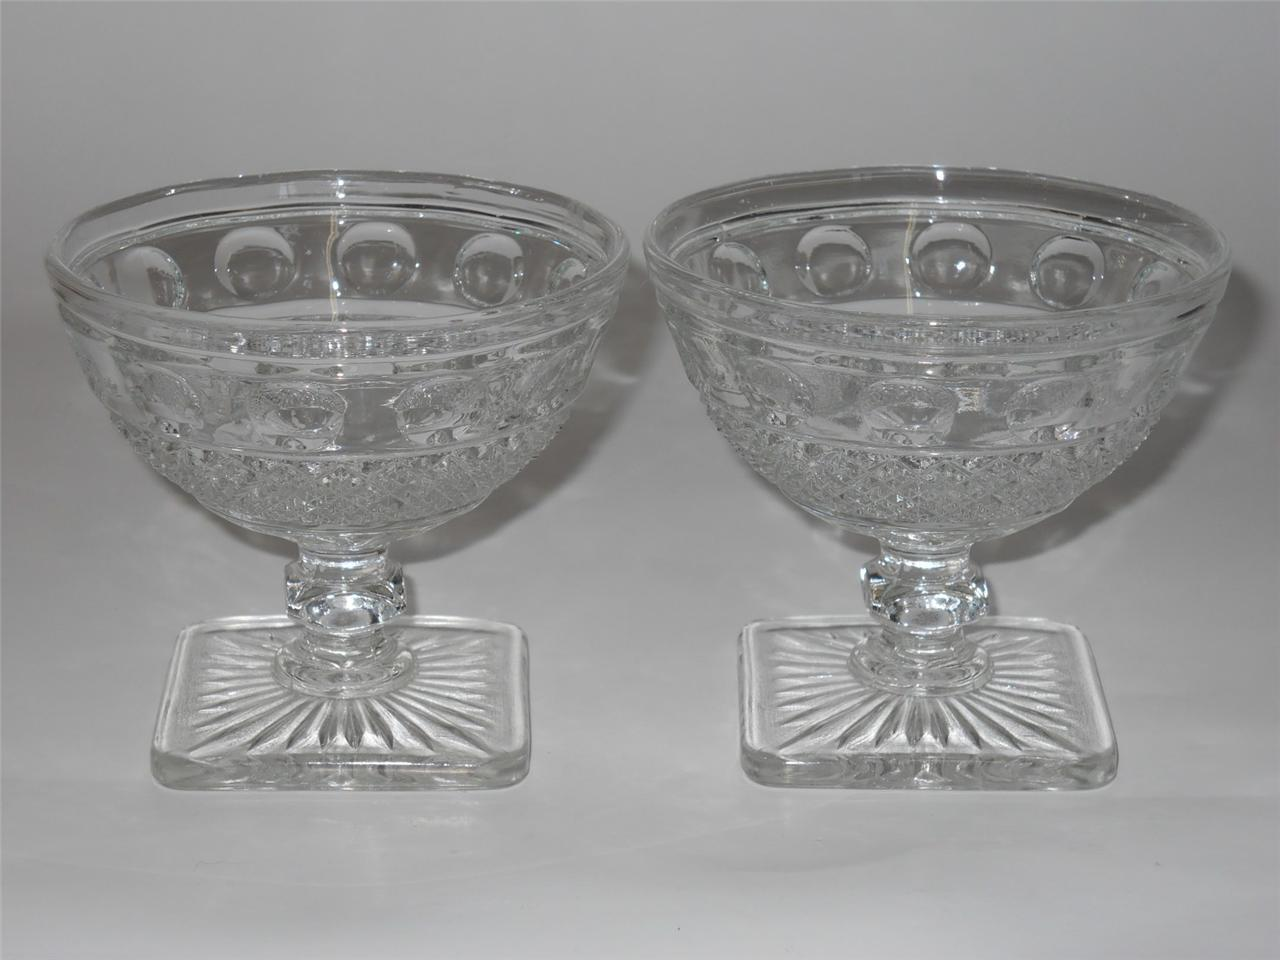 Primary image for Imperial ~ Tradition ~ Clear Glass Square Footed Sherbets (2) ~ Dessert Dish